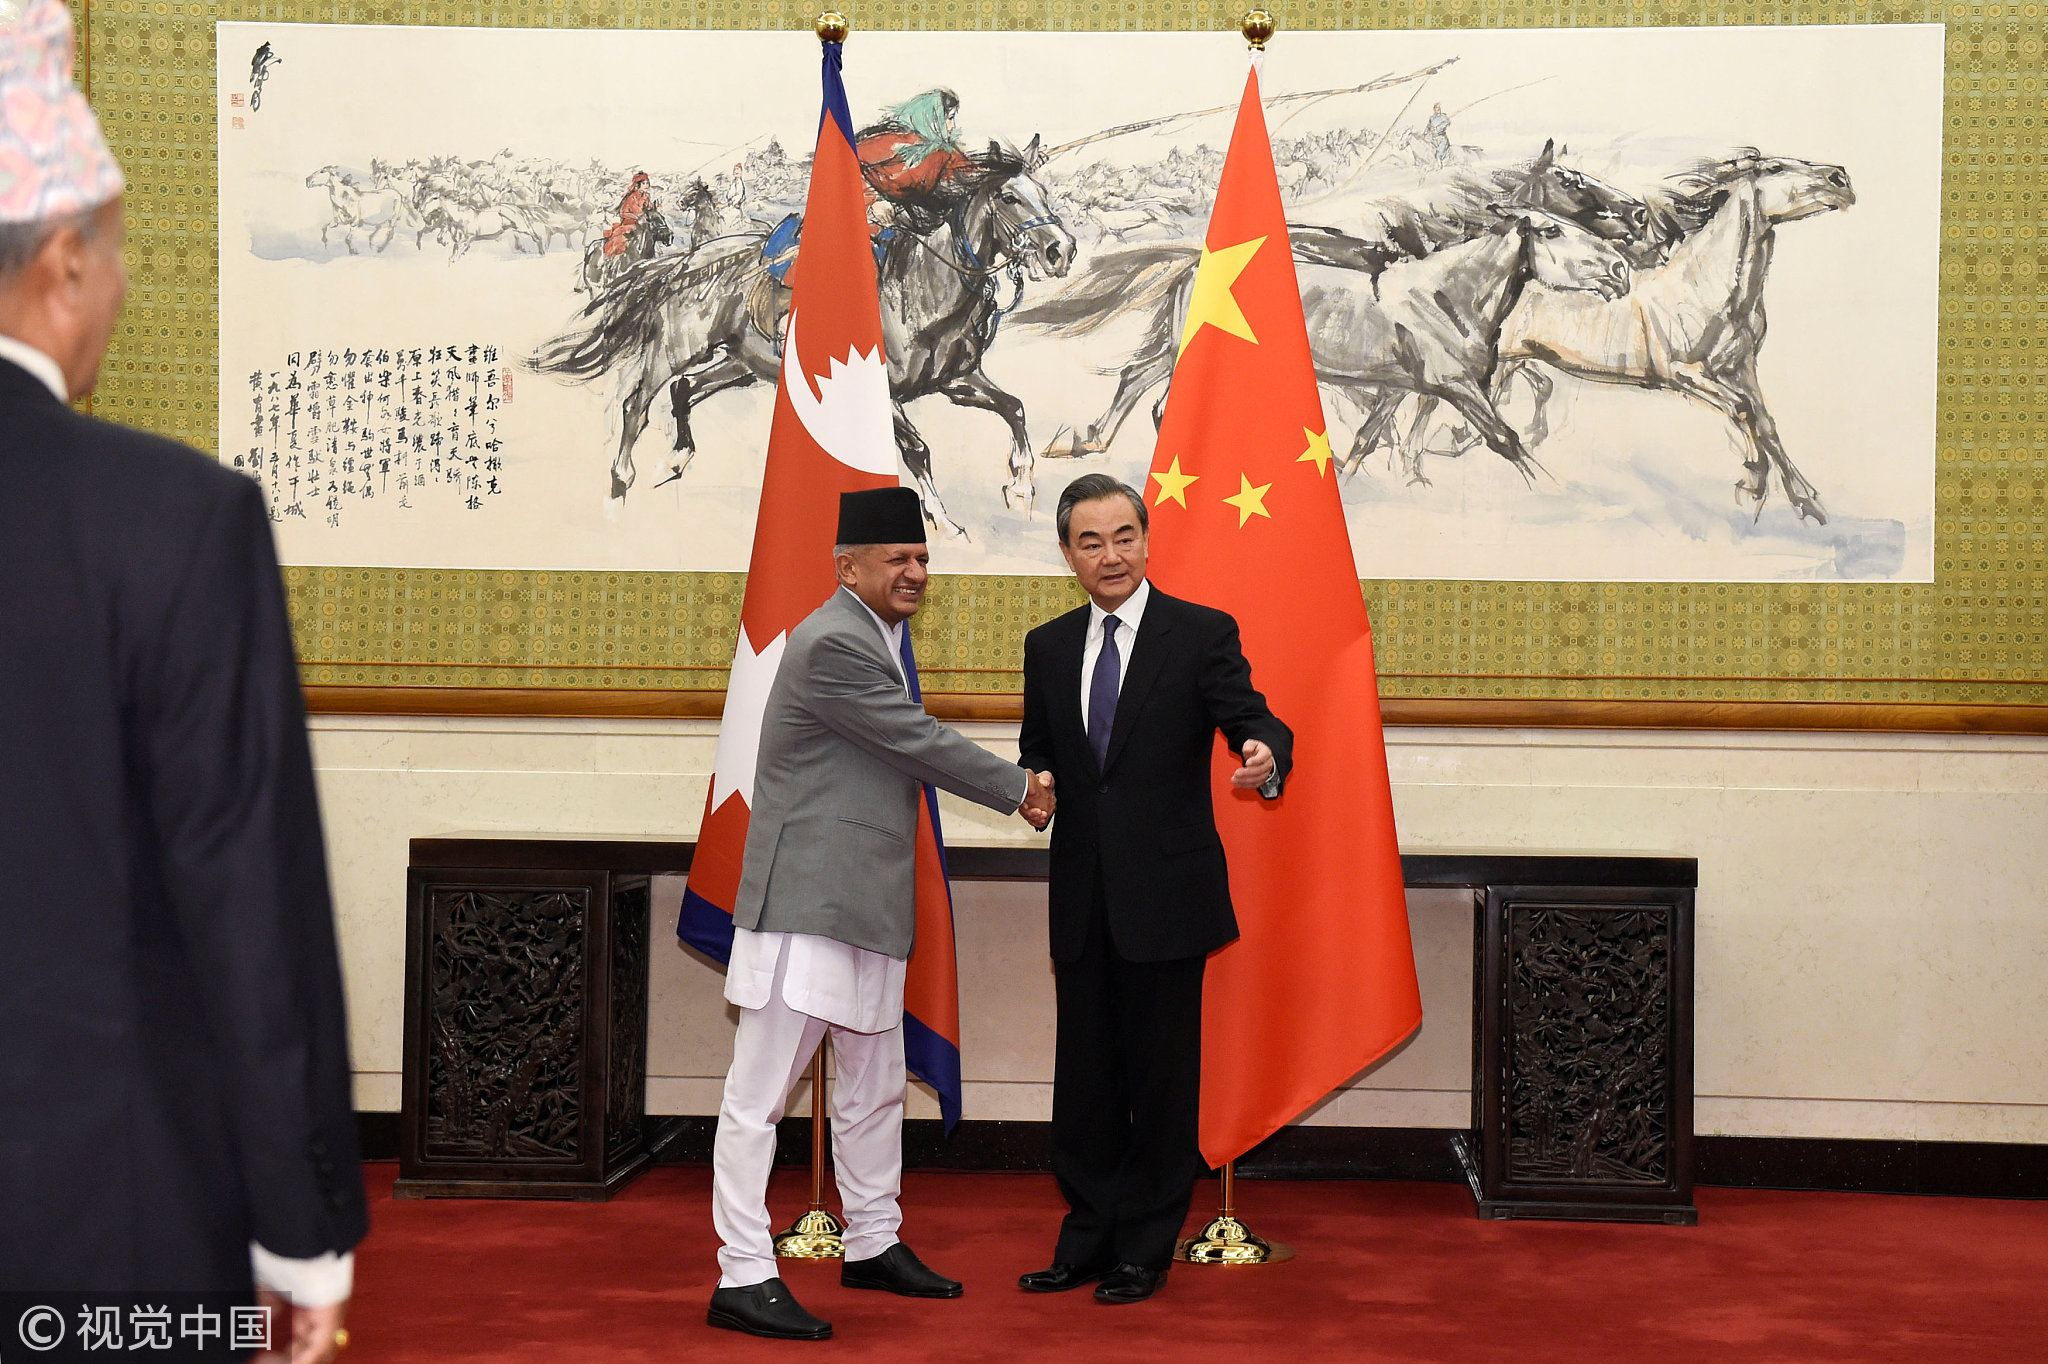 Nepal's Oli visits Beijing amid China-India-Nepal Triangle